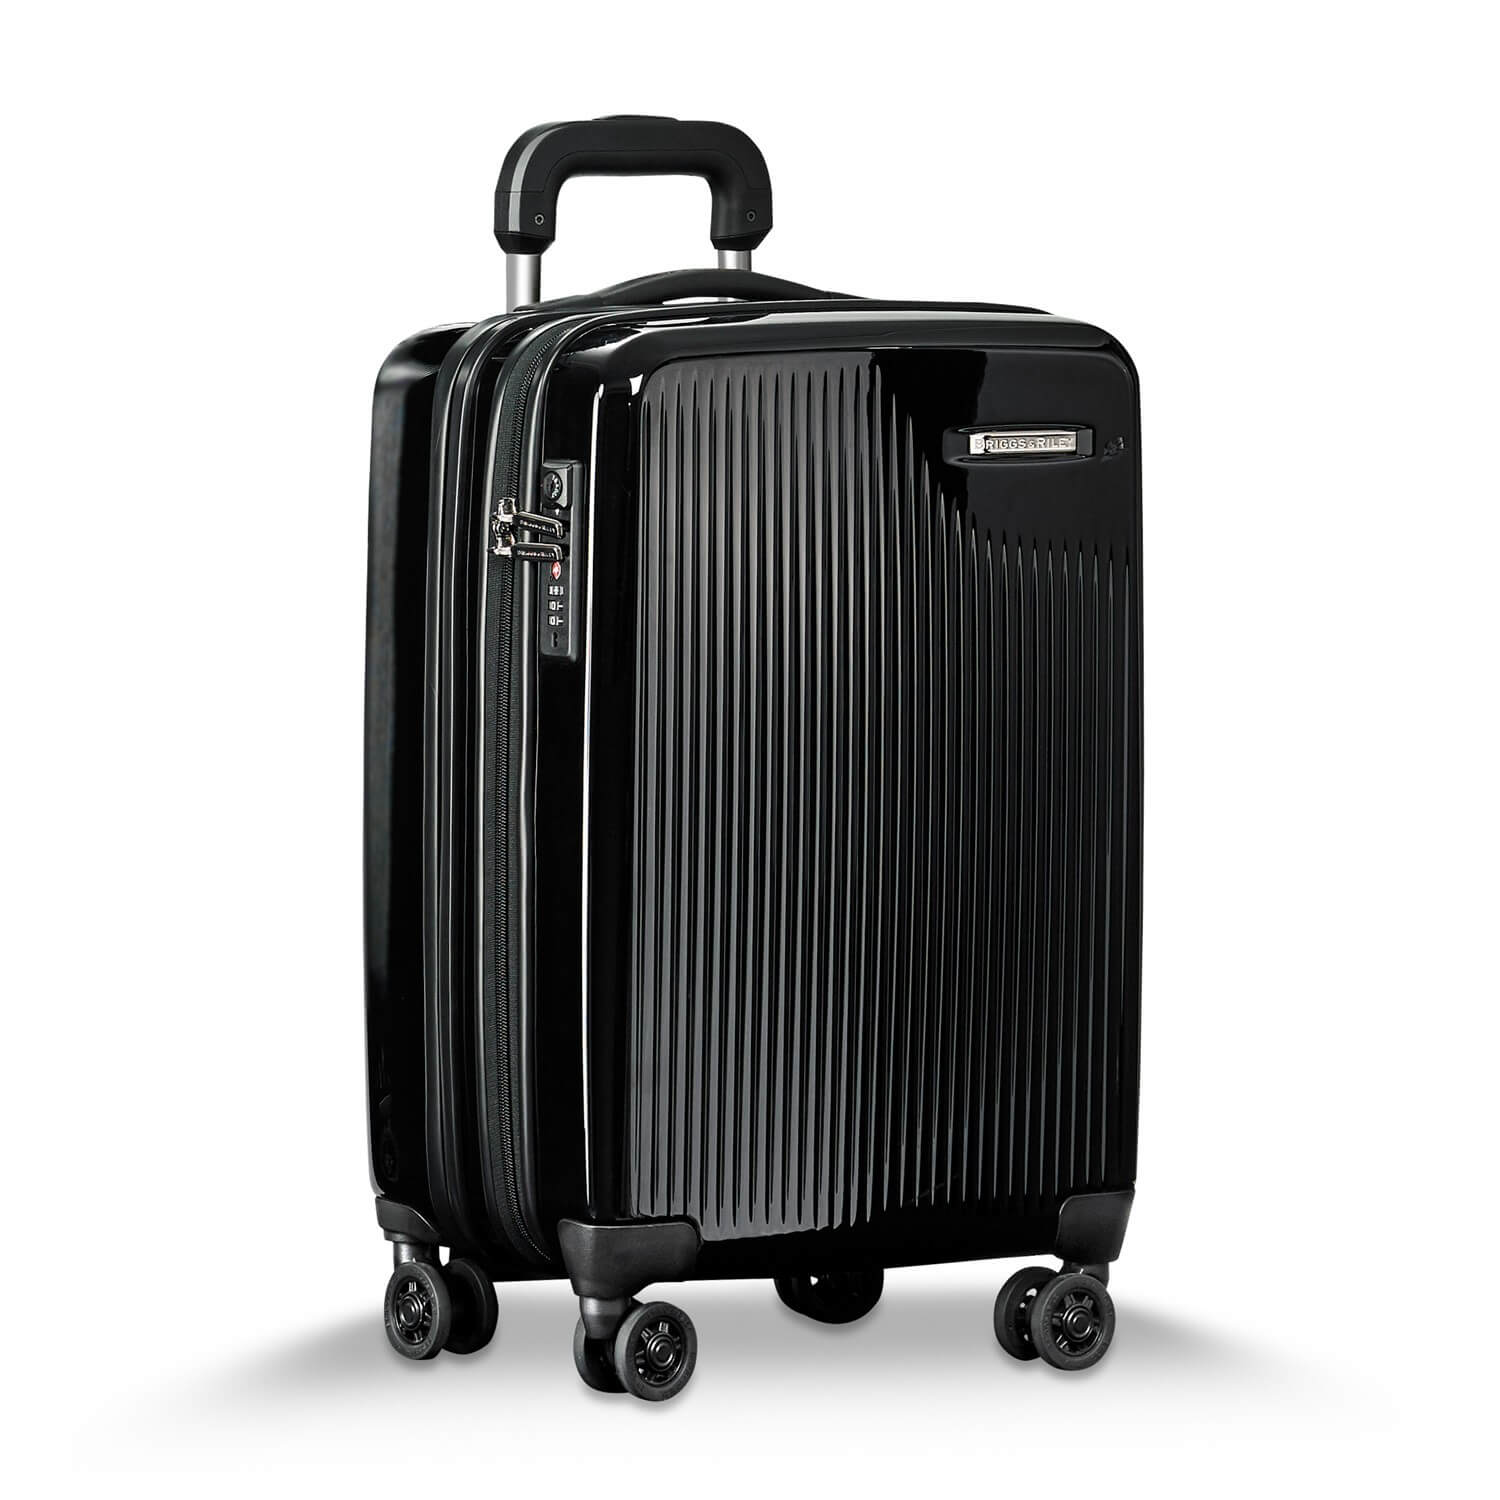 Briggs and Riley LTD Sympatico International Carry-On Spinner